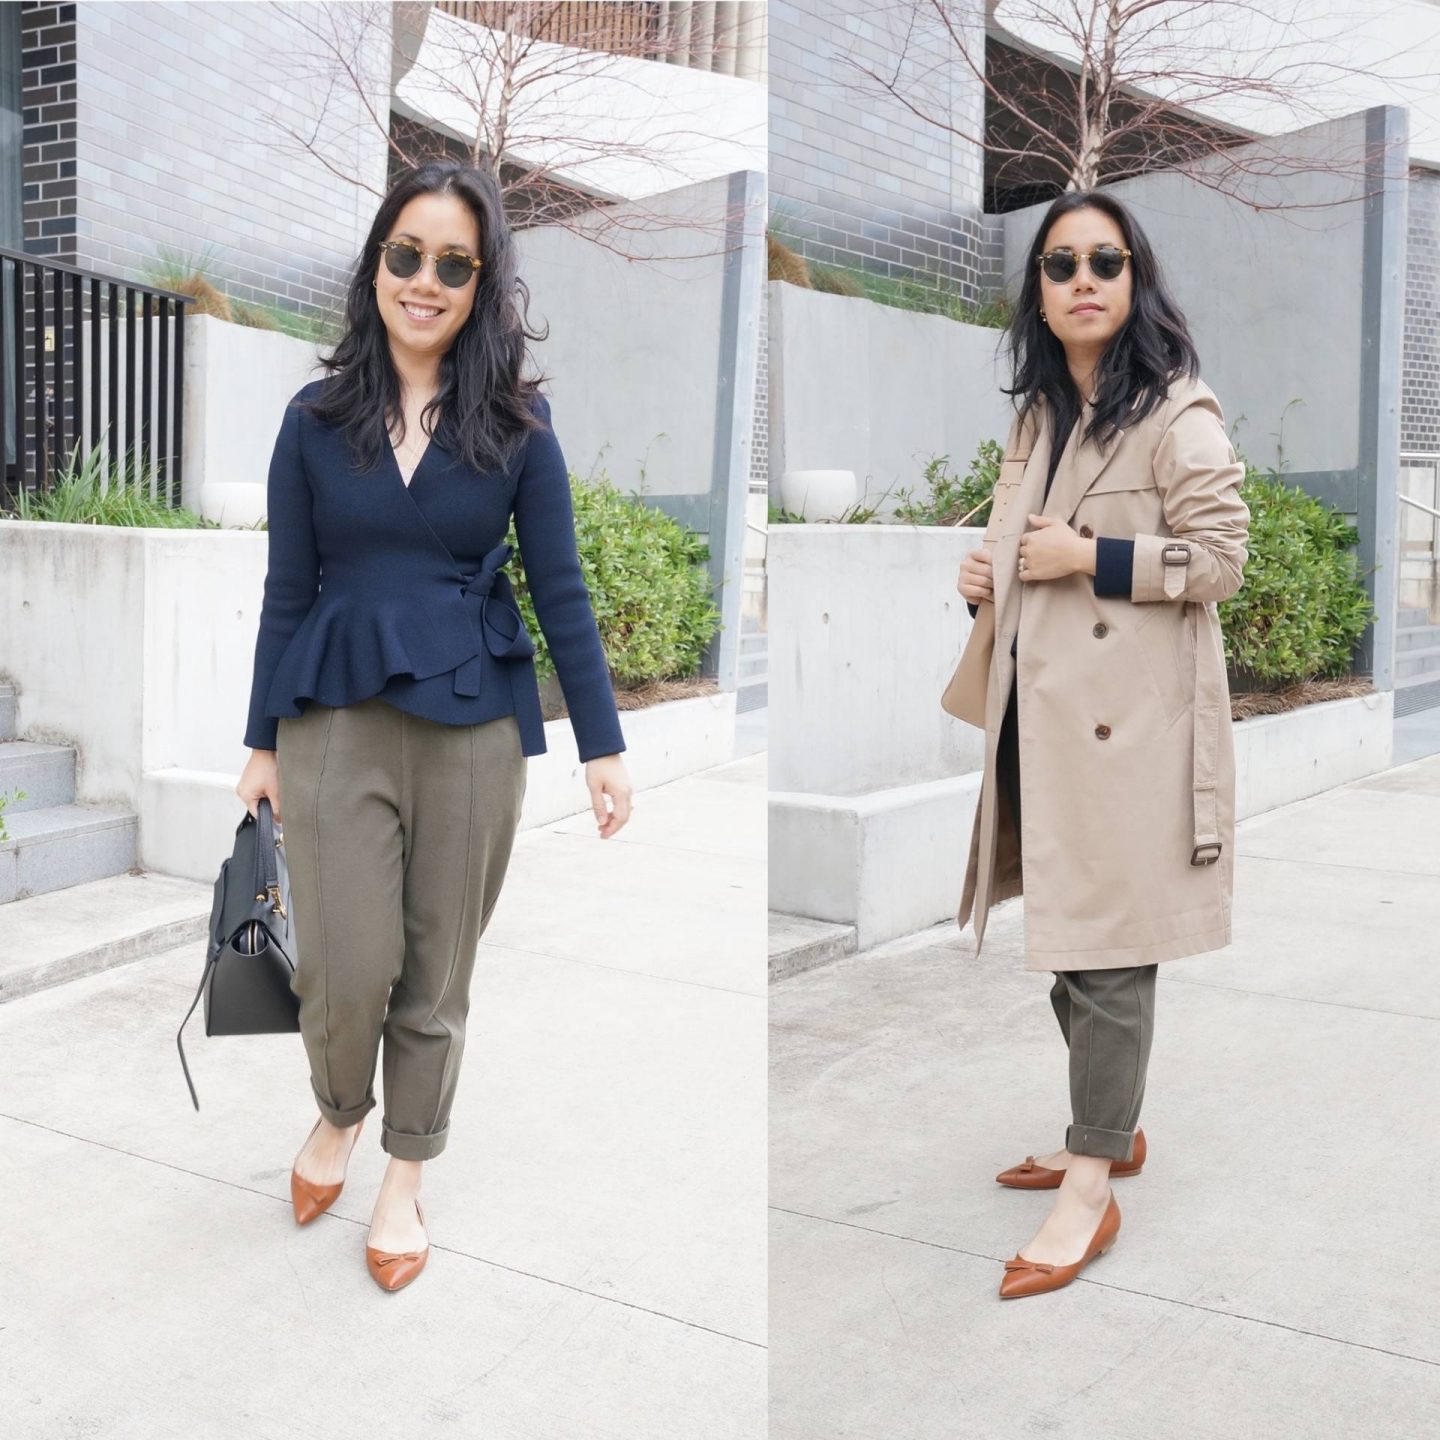 petite workwear blogger styling pointed toe flats in blog post about sarah flint natalie flats review